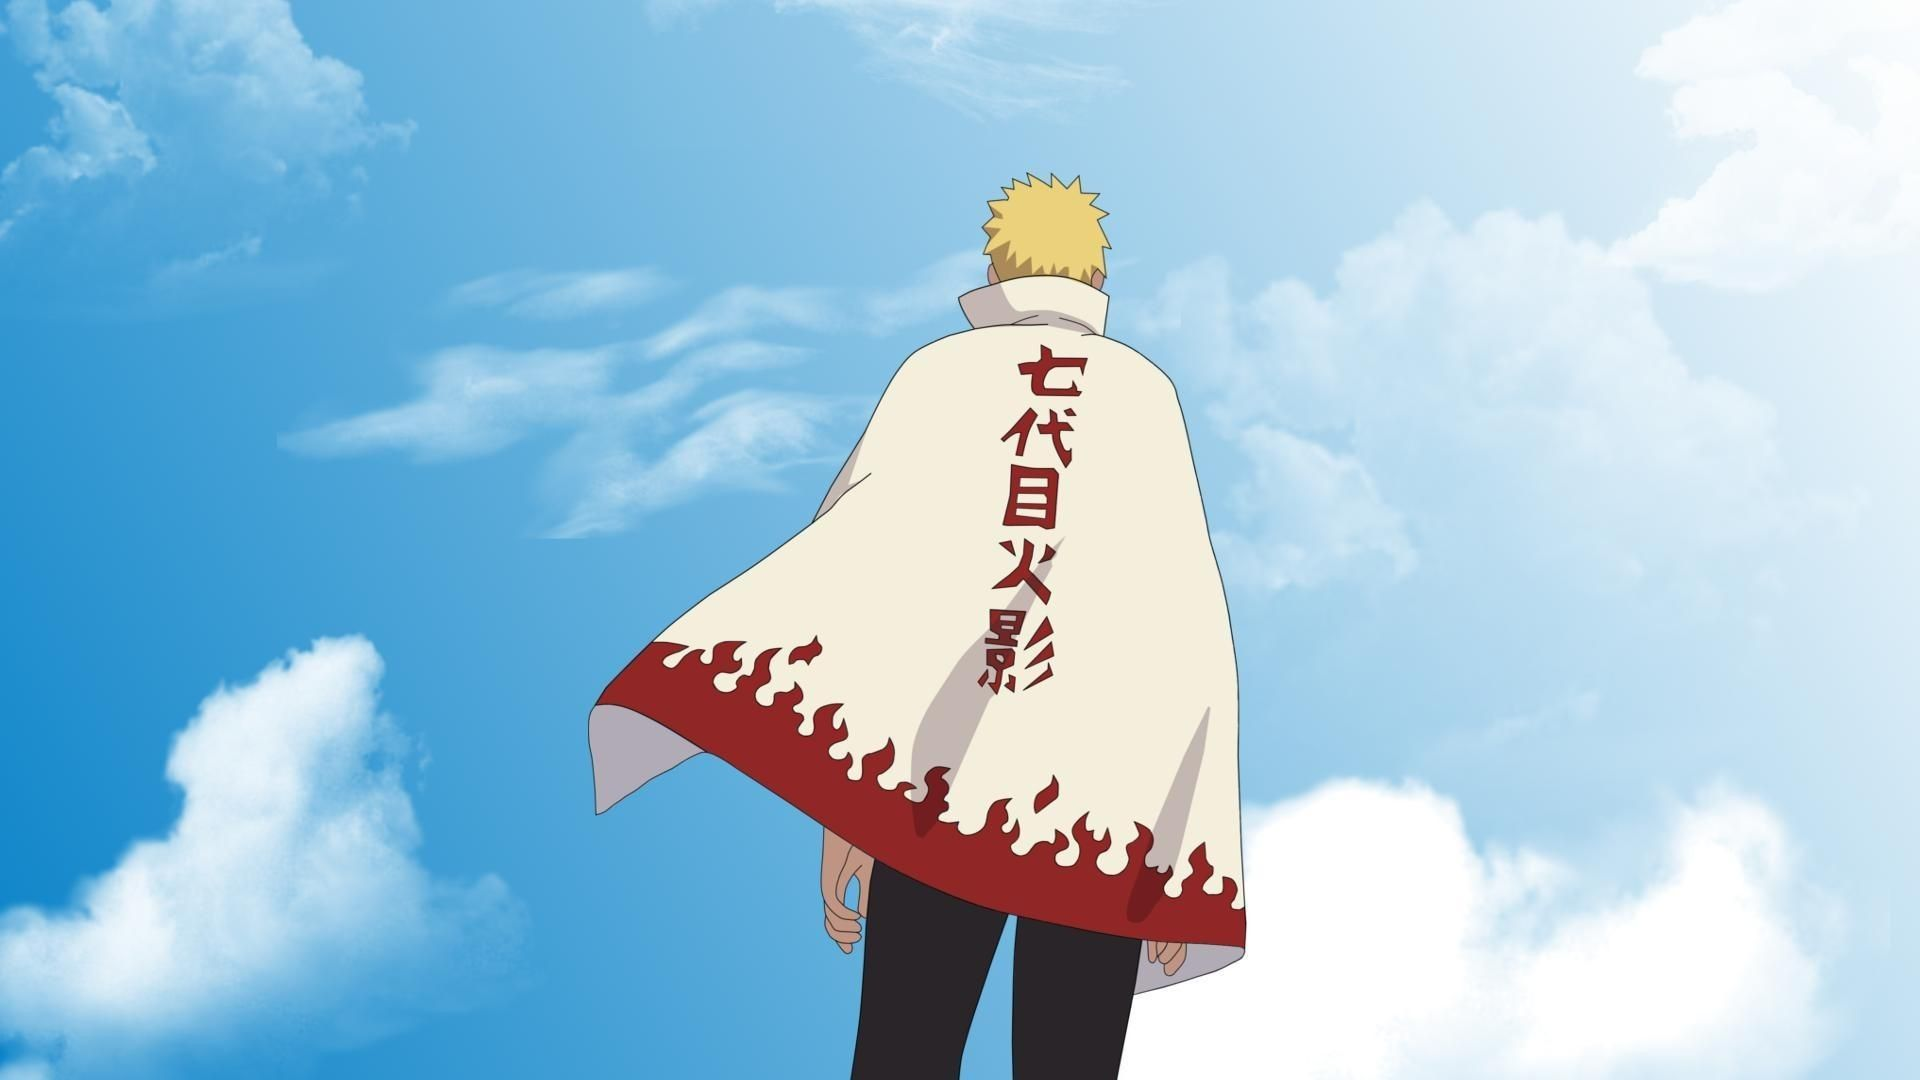 1920x1080 Naruto Hokage Wallpaper By Hd Wallpapers Daily Naruto